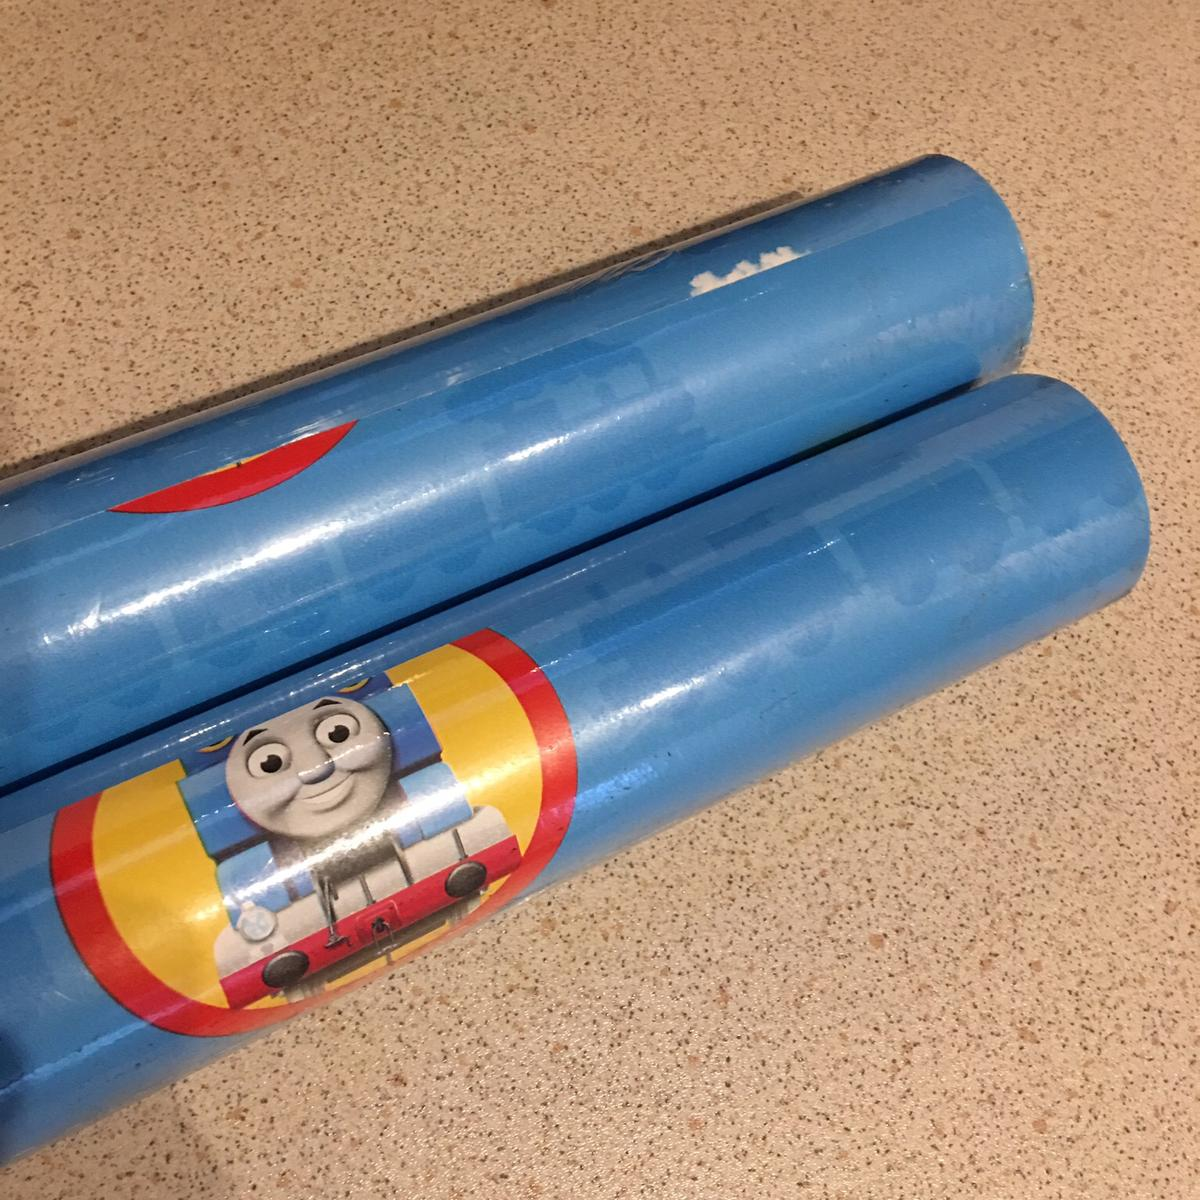 Thomas The Tank Engine Wallpaper In Pr2 Preston For Free For